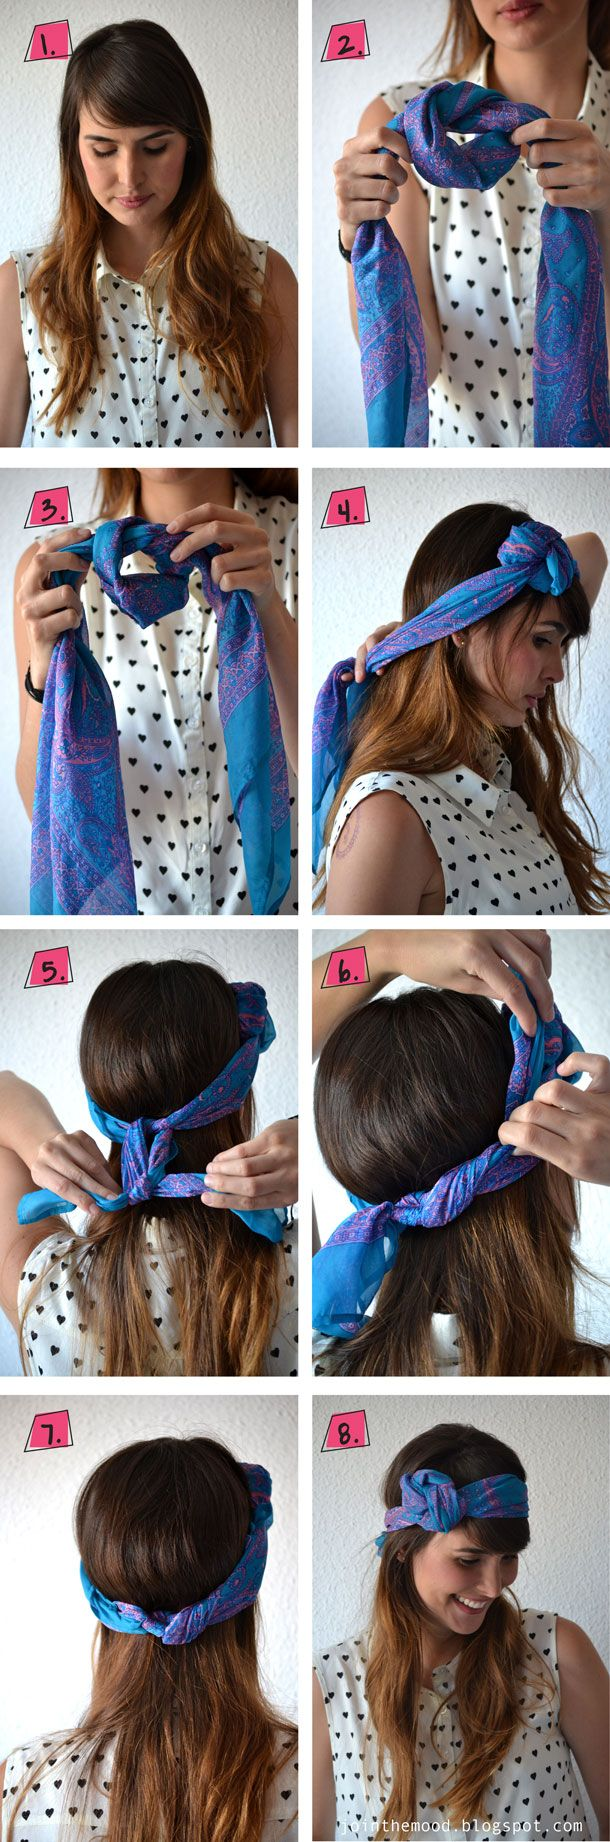 Join the mood hairstyle with bandana part peinado con paÑoleta